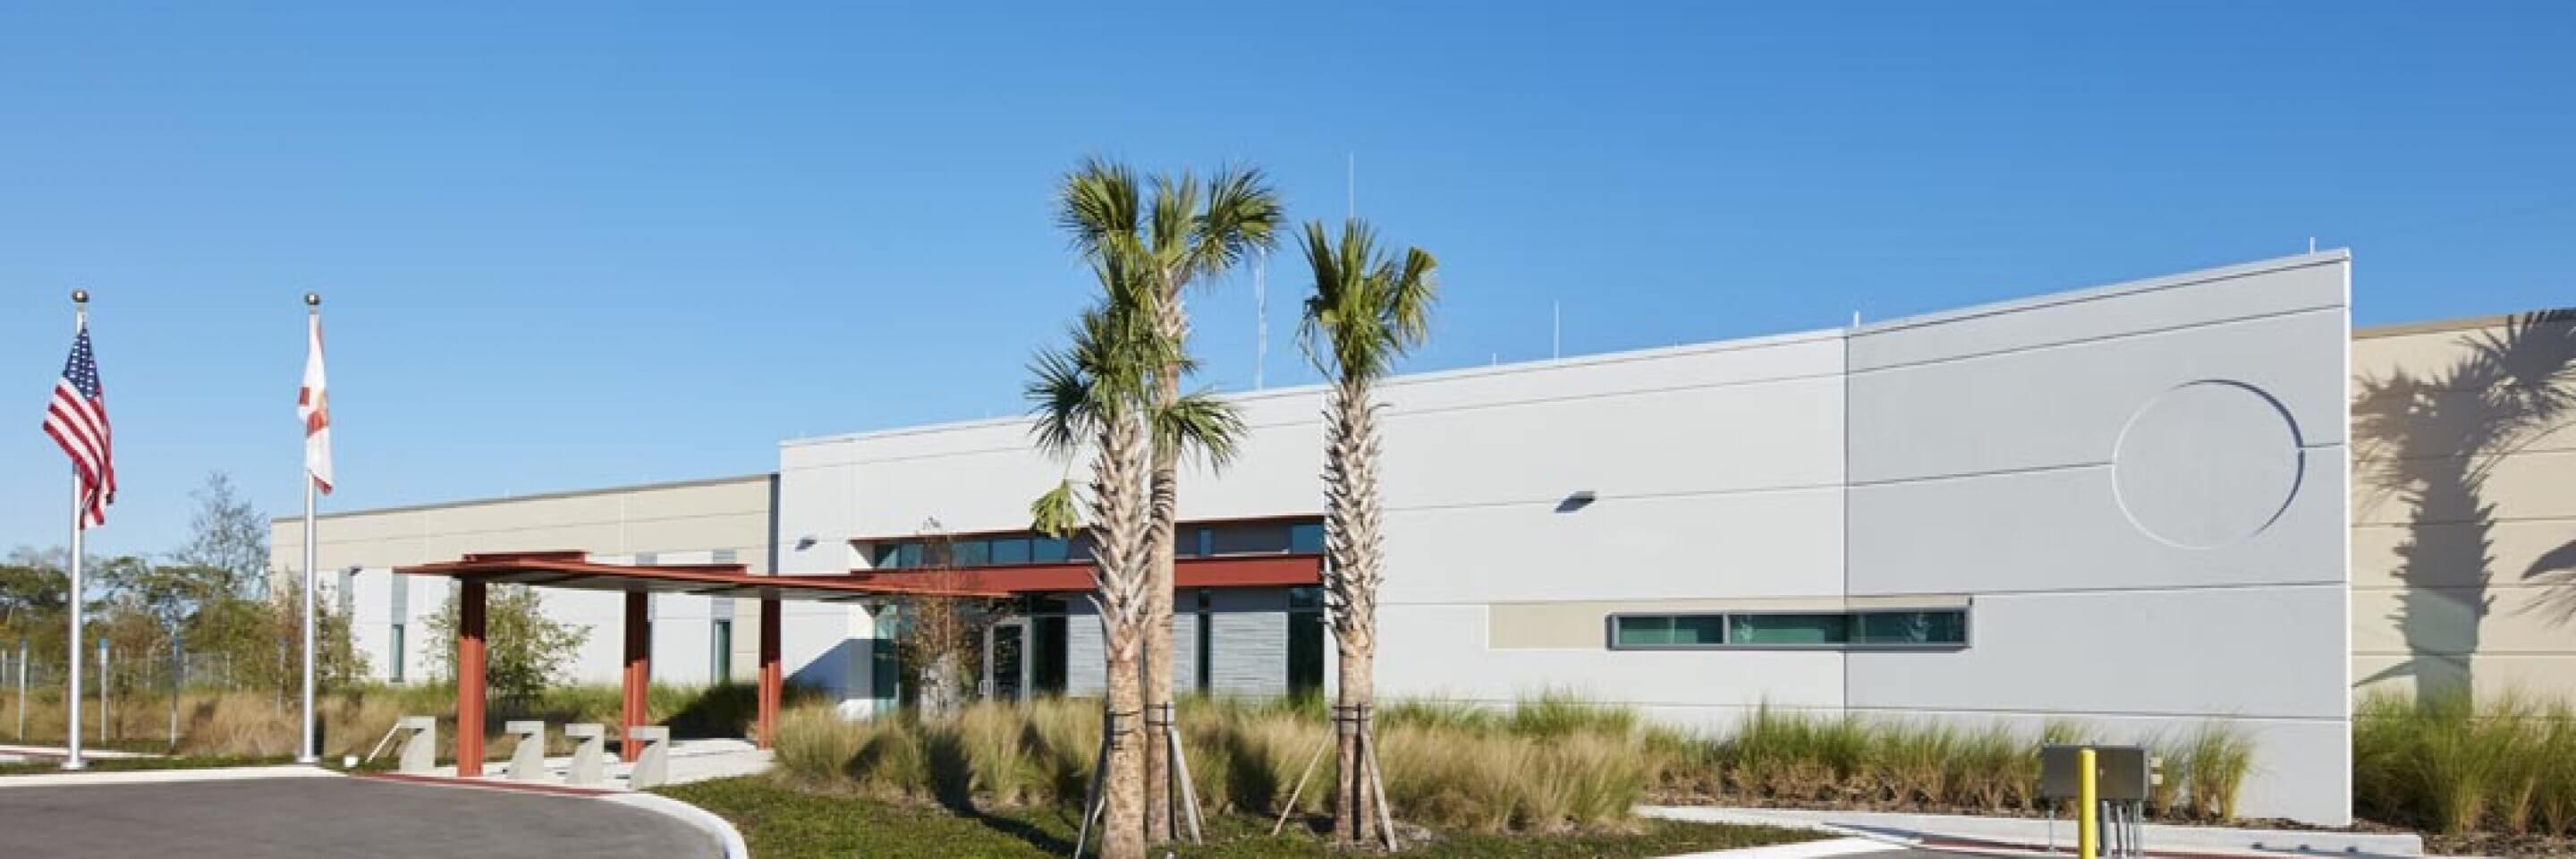 Hillsborough County Public Safety Operations Center